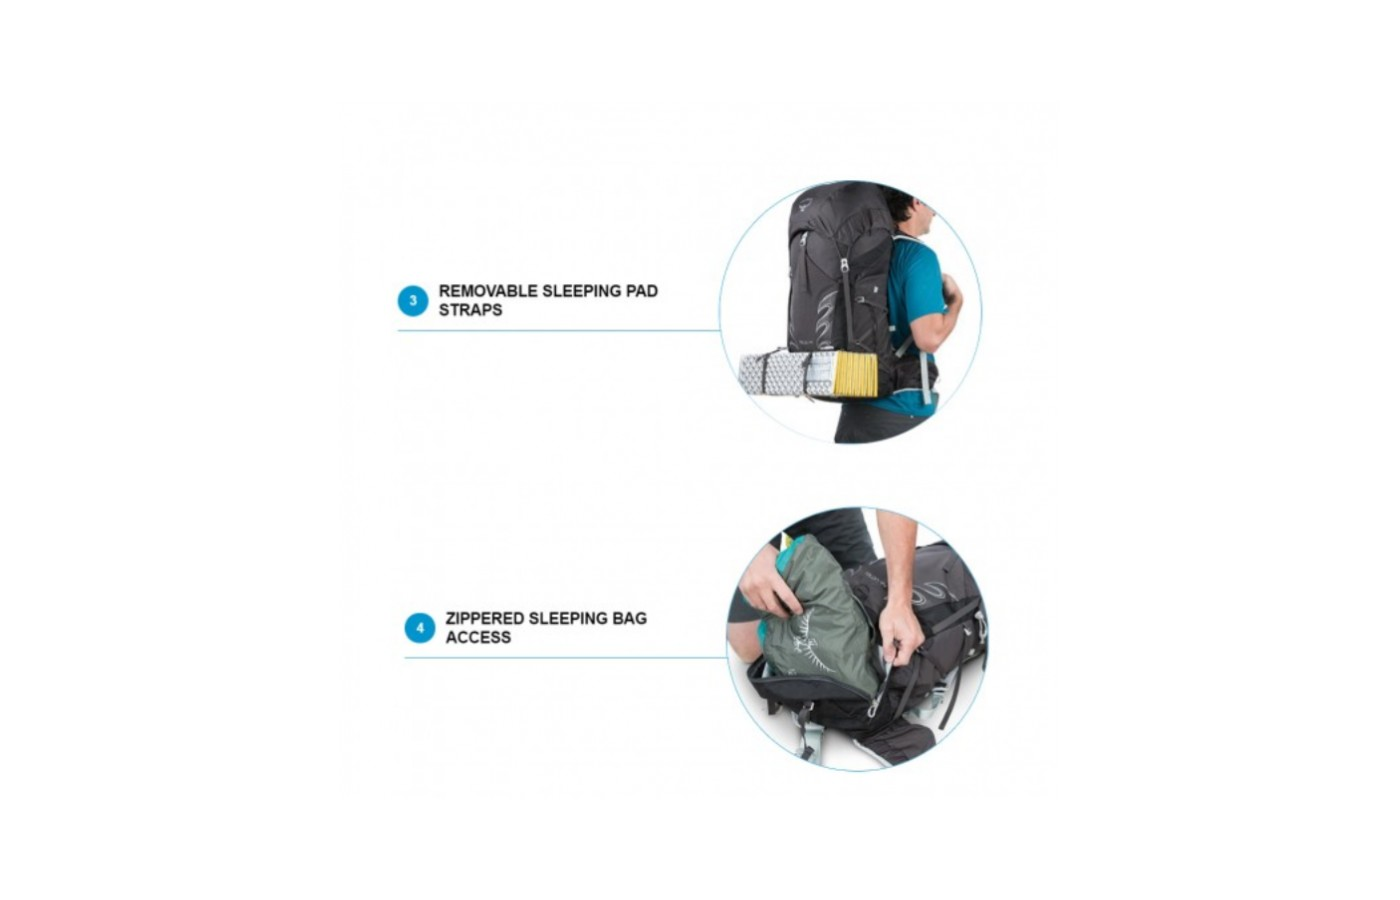 This pack even has a lower storage pocket and straps for a sleeping pad and bag.